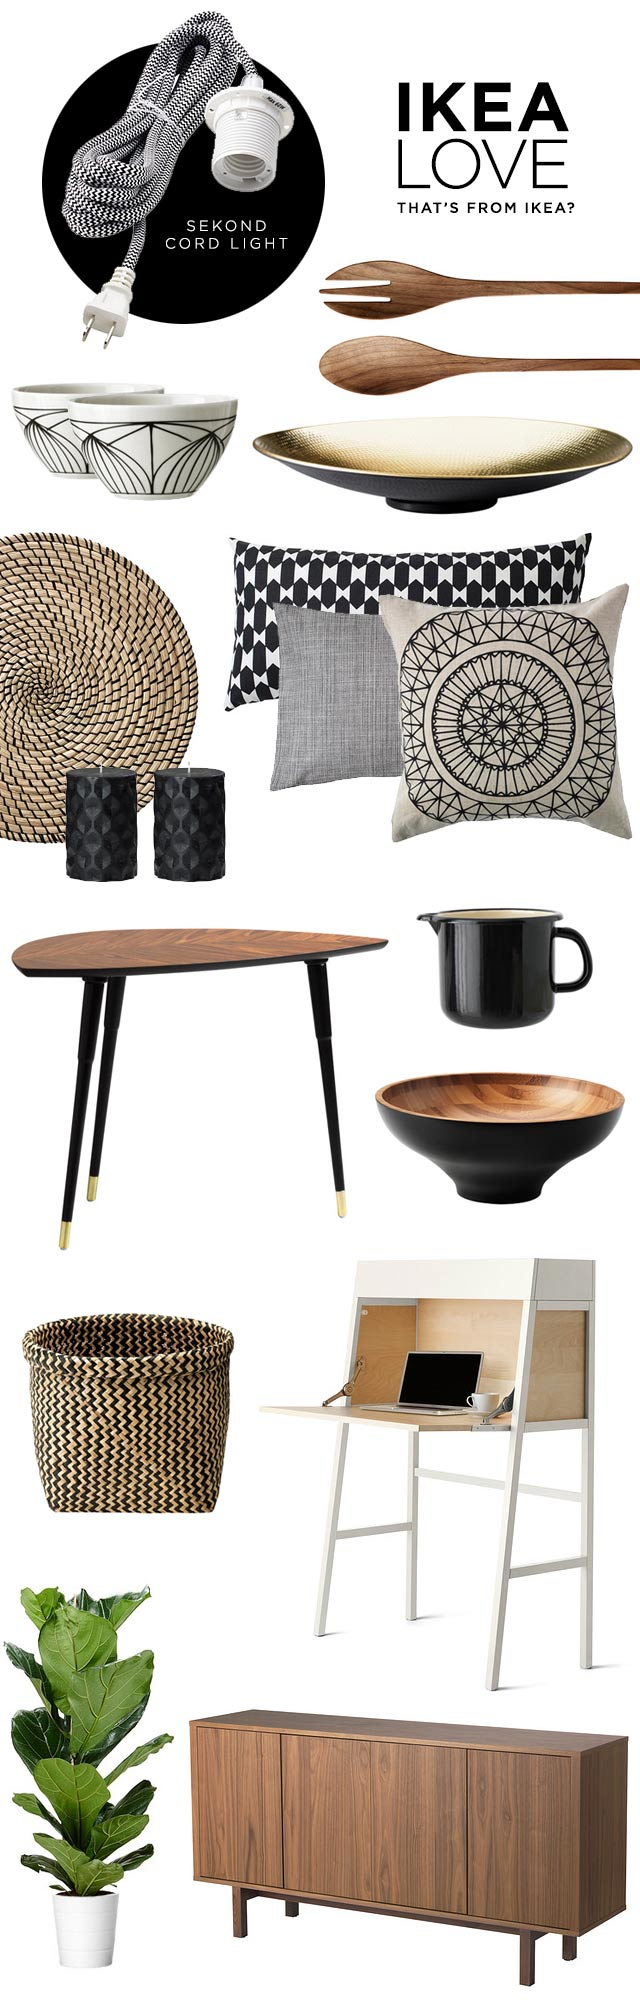 Ikea favorite products